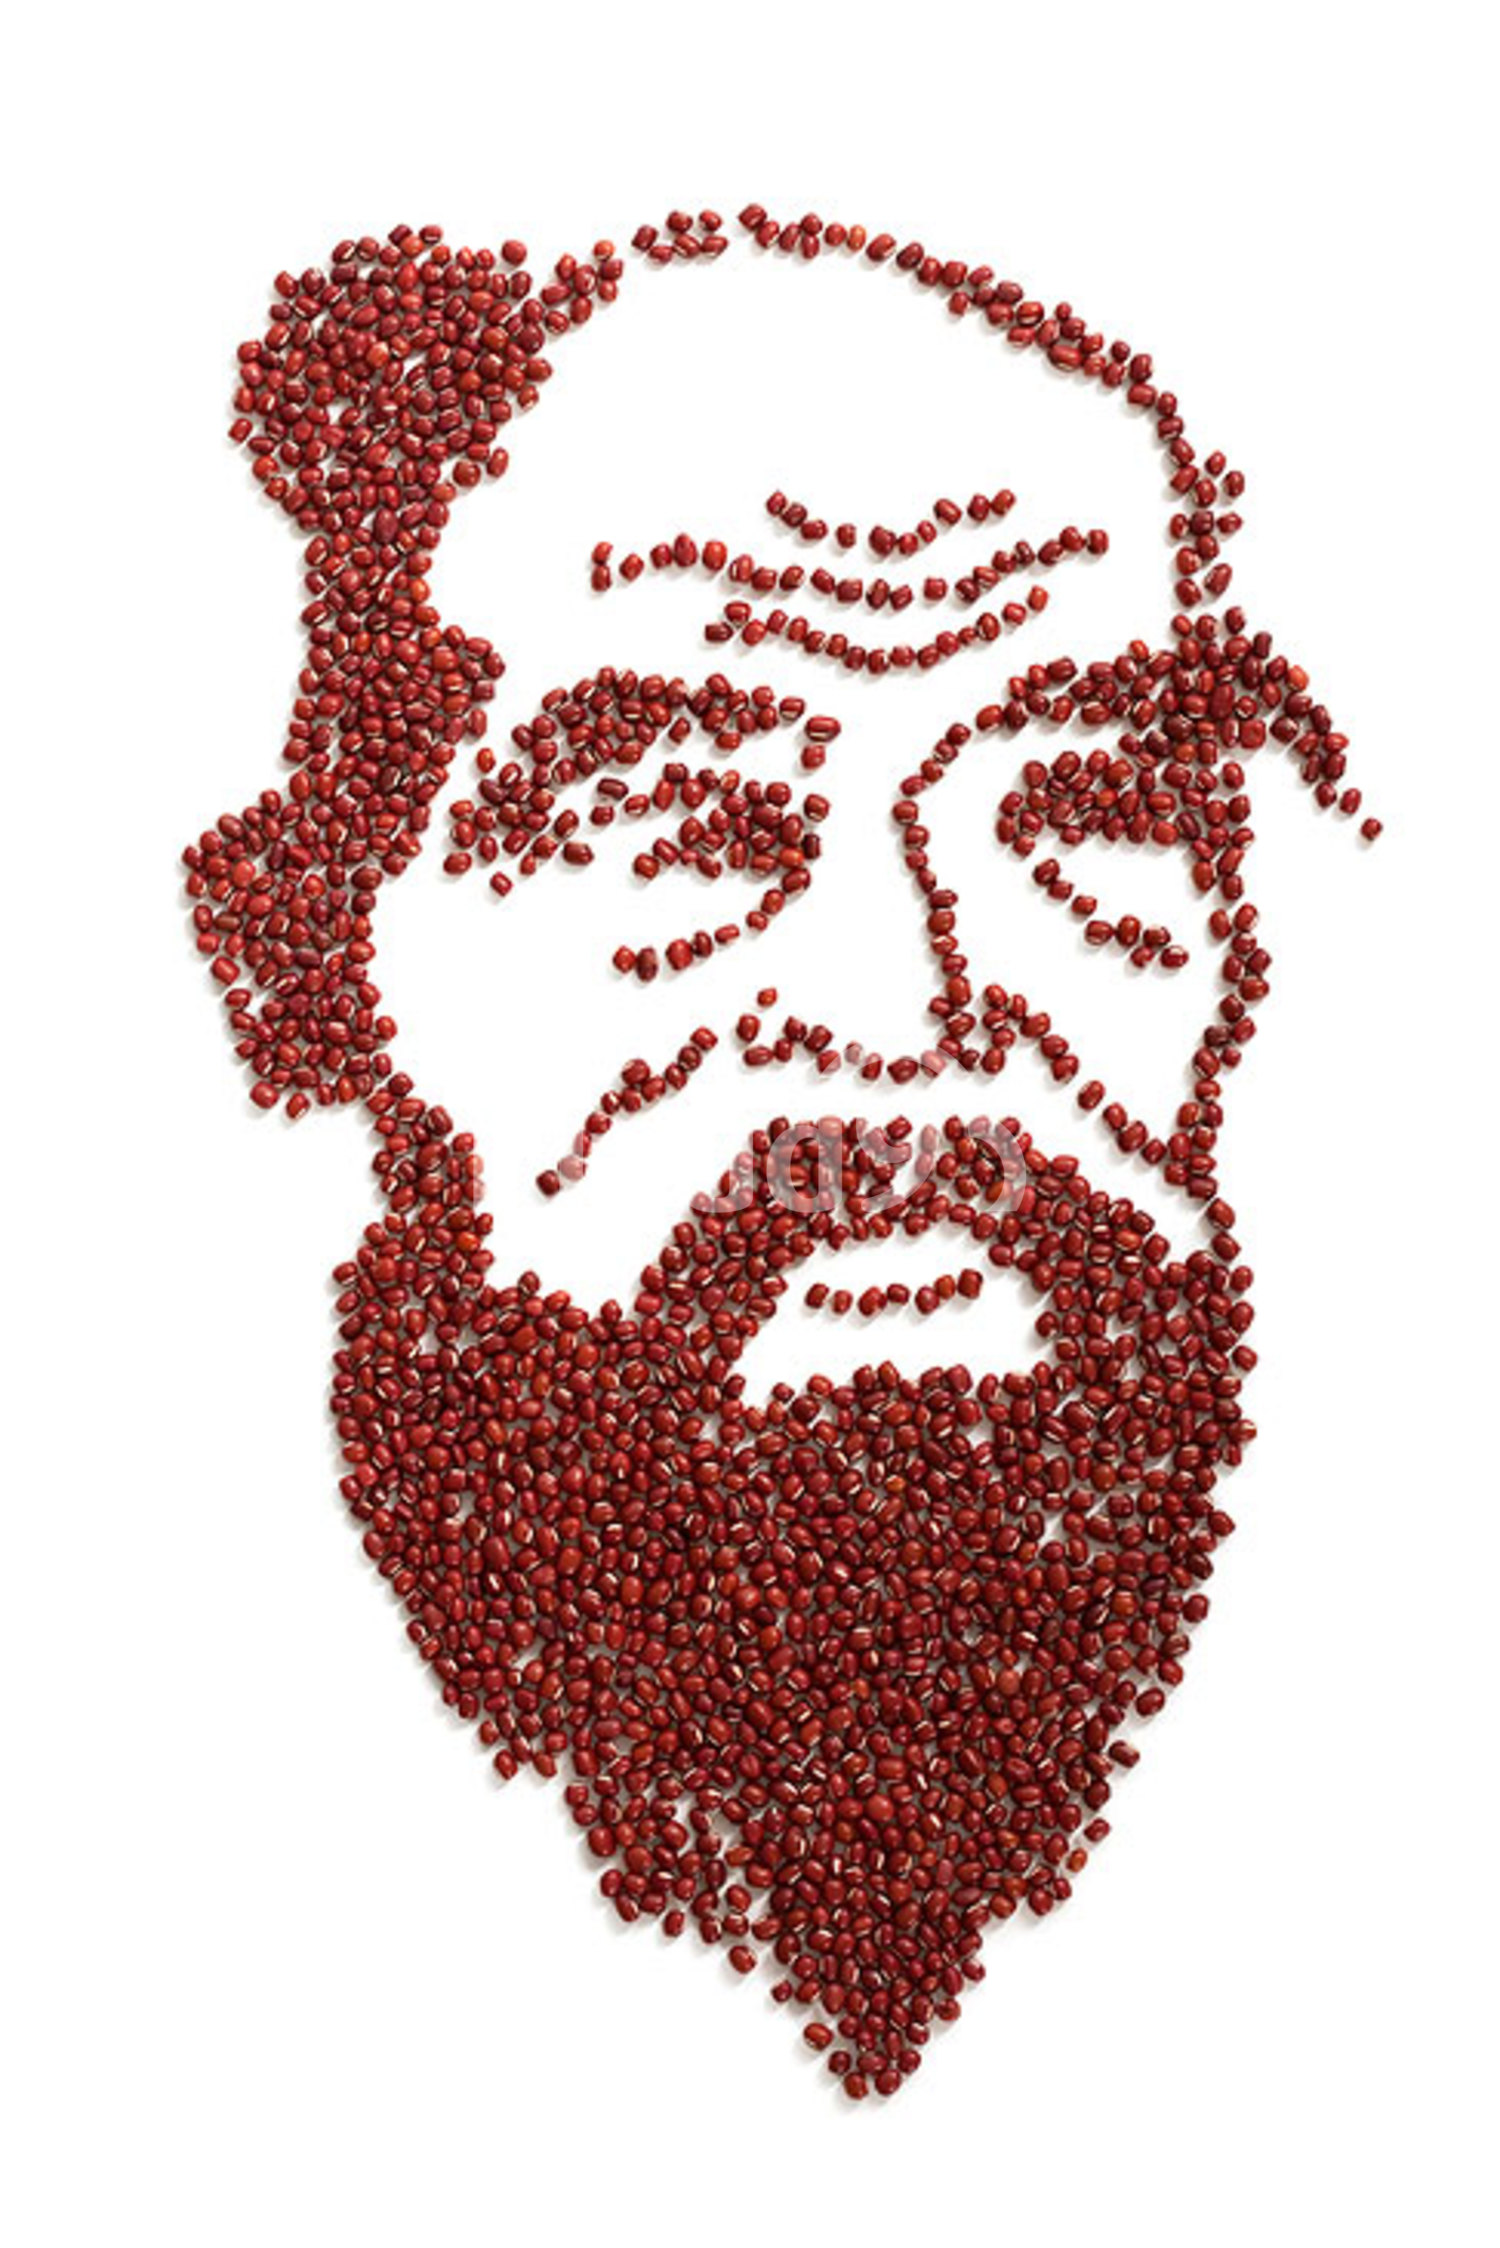 Portrait of Confucius made of red beans